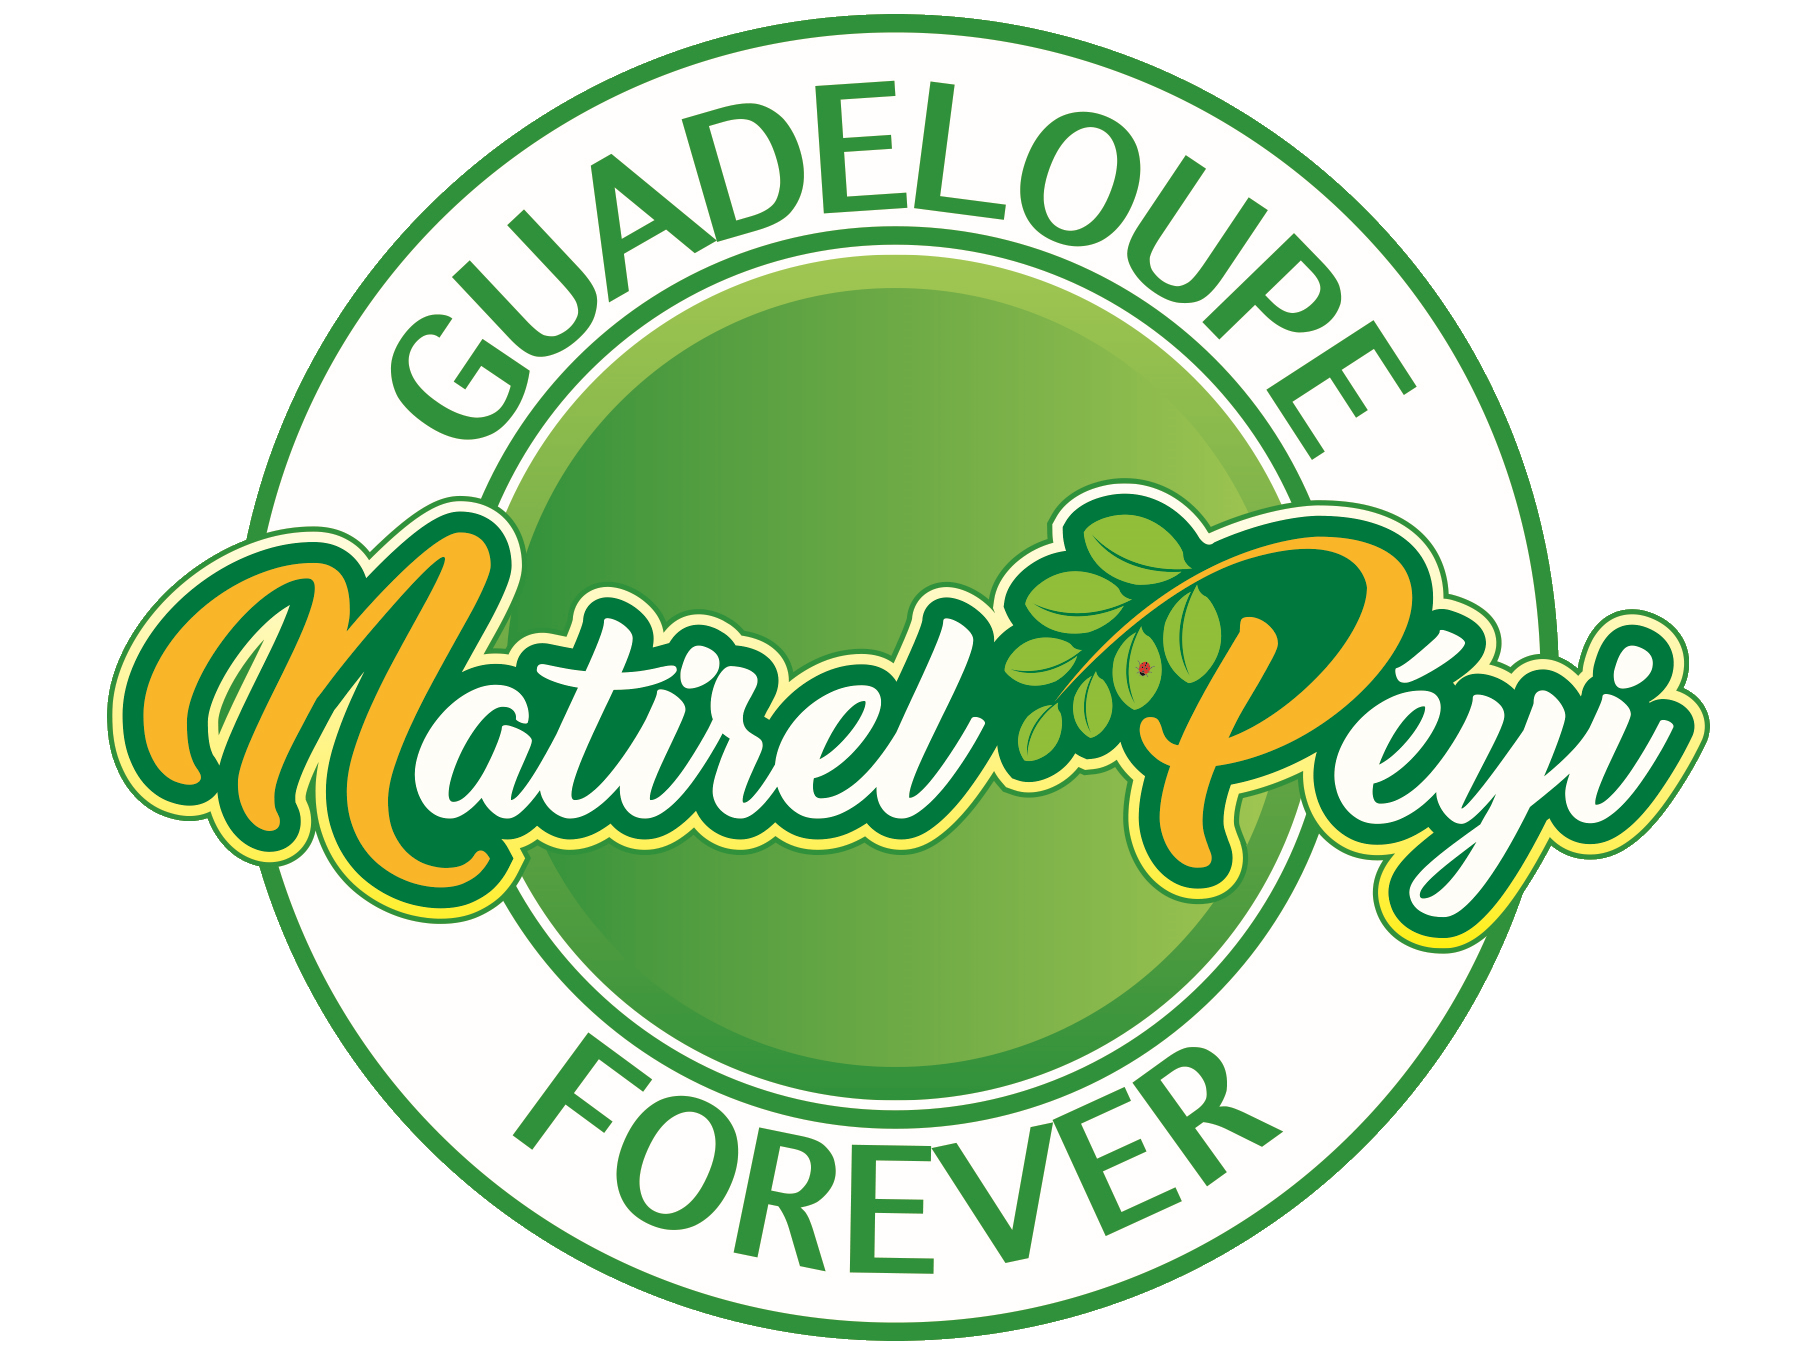 Guadeloupe Forever